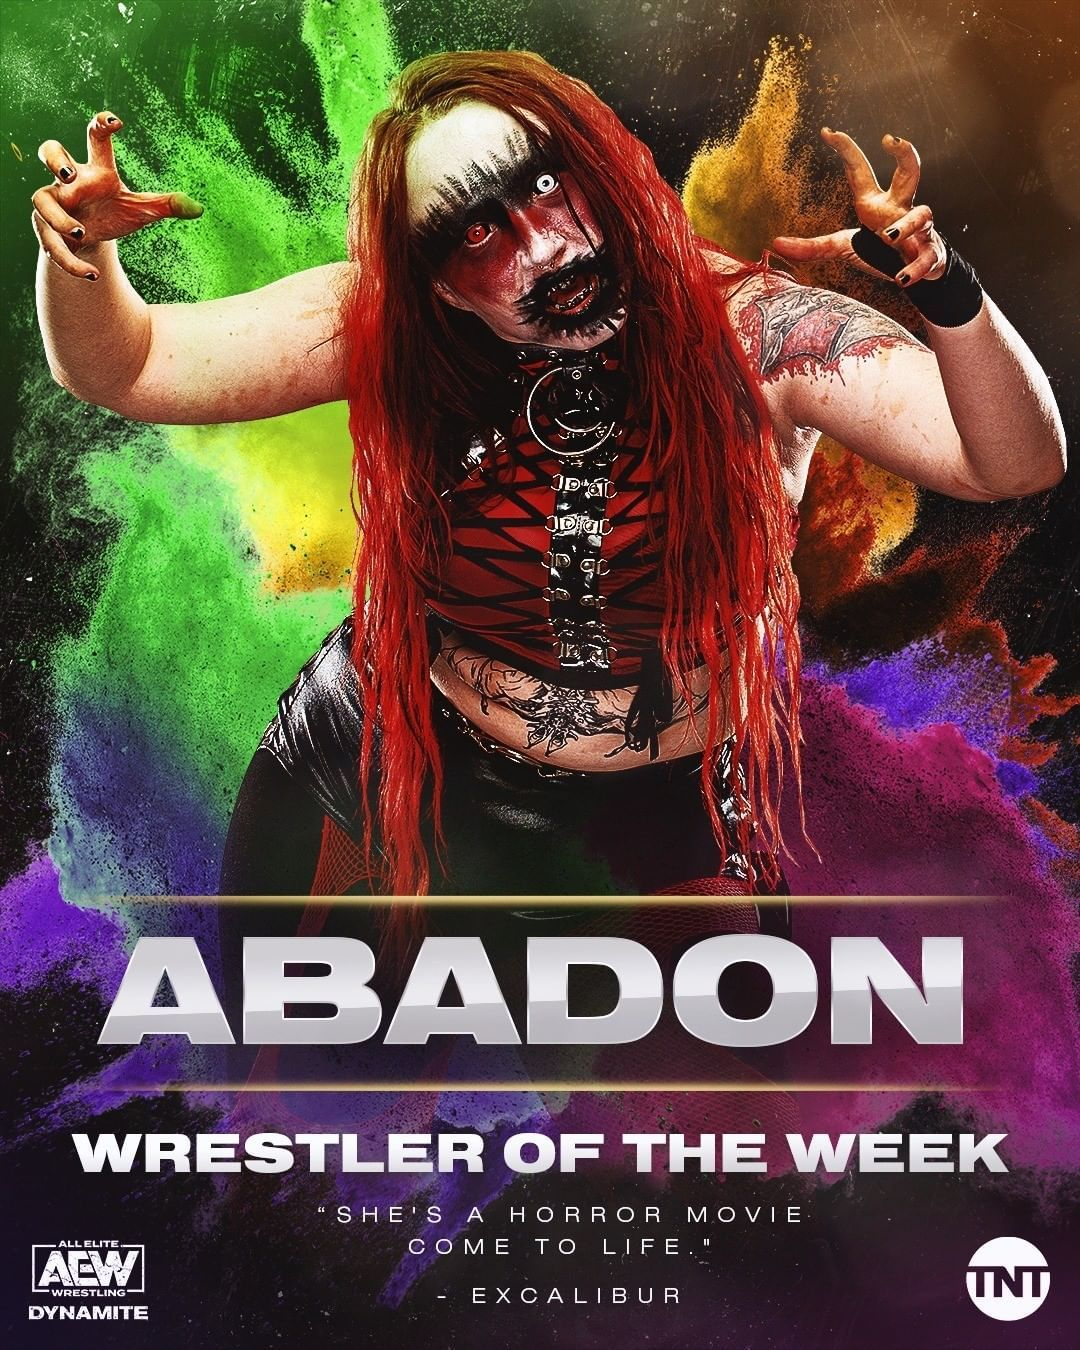 Aew On Tnt On Instagram The Only Thing Scarier Than Abadon Aew Is Abadon Aew In The Ring Making Her Our Wres Wrestler Wrestling Wwe Professional Wrestling